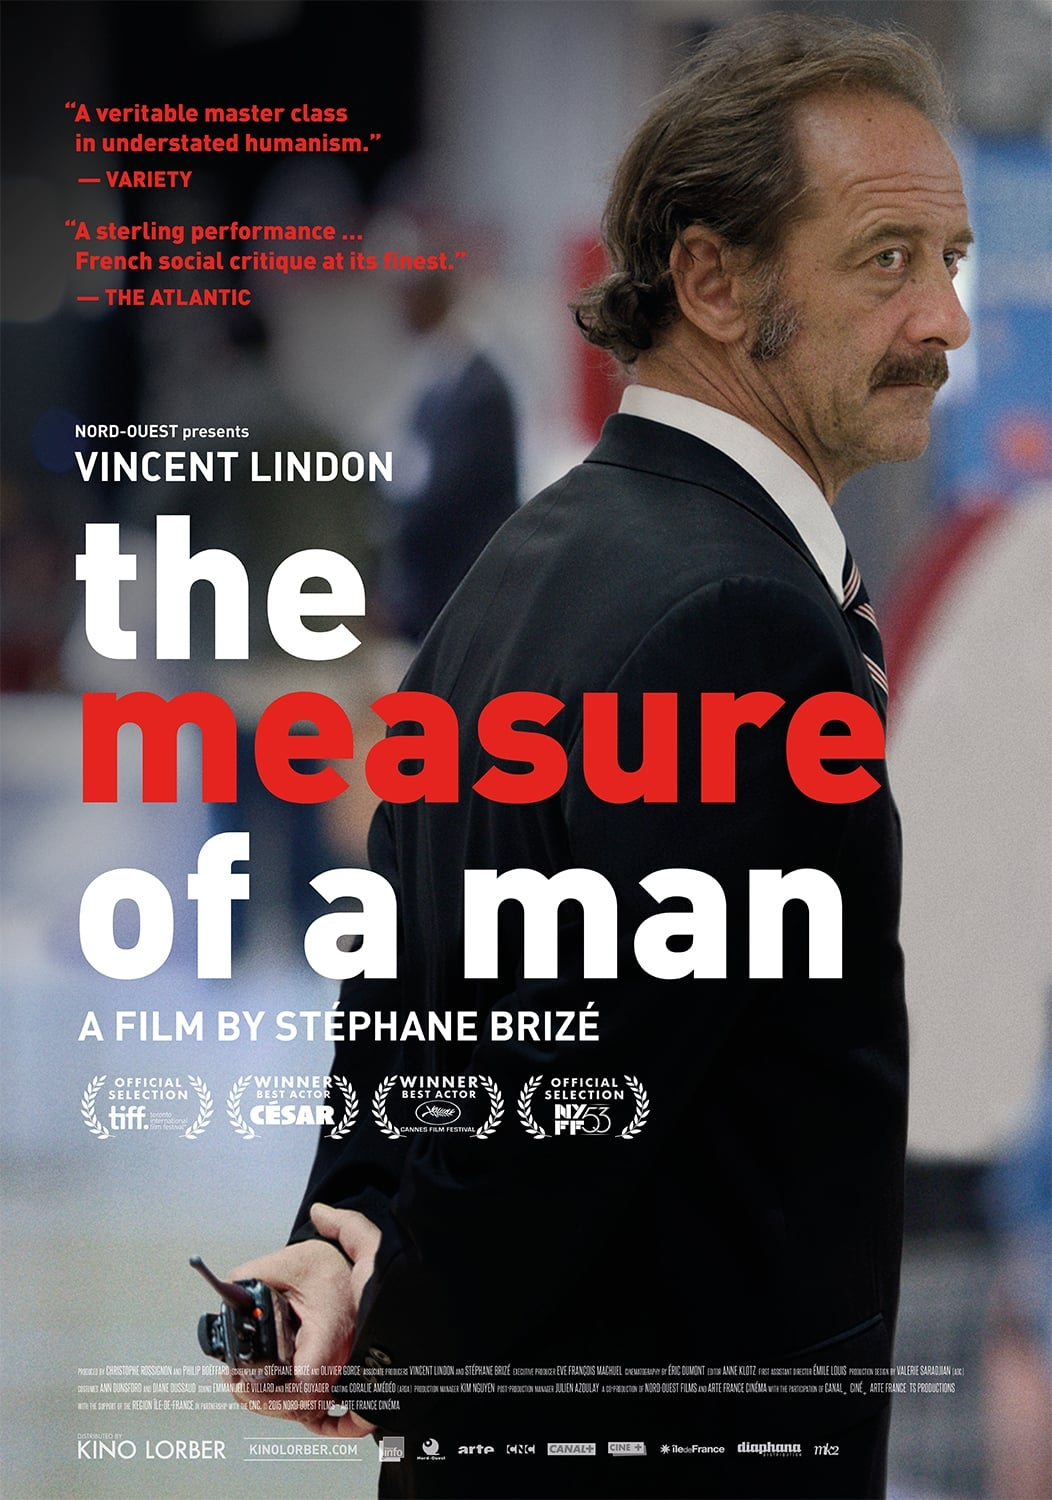 La Ley del Mercado (The Measure of a Man)